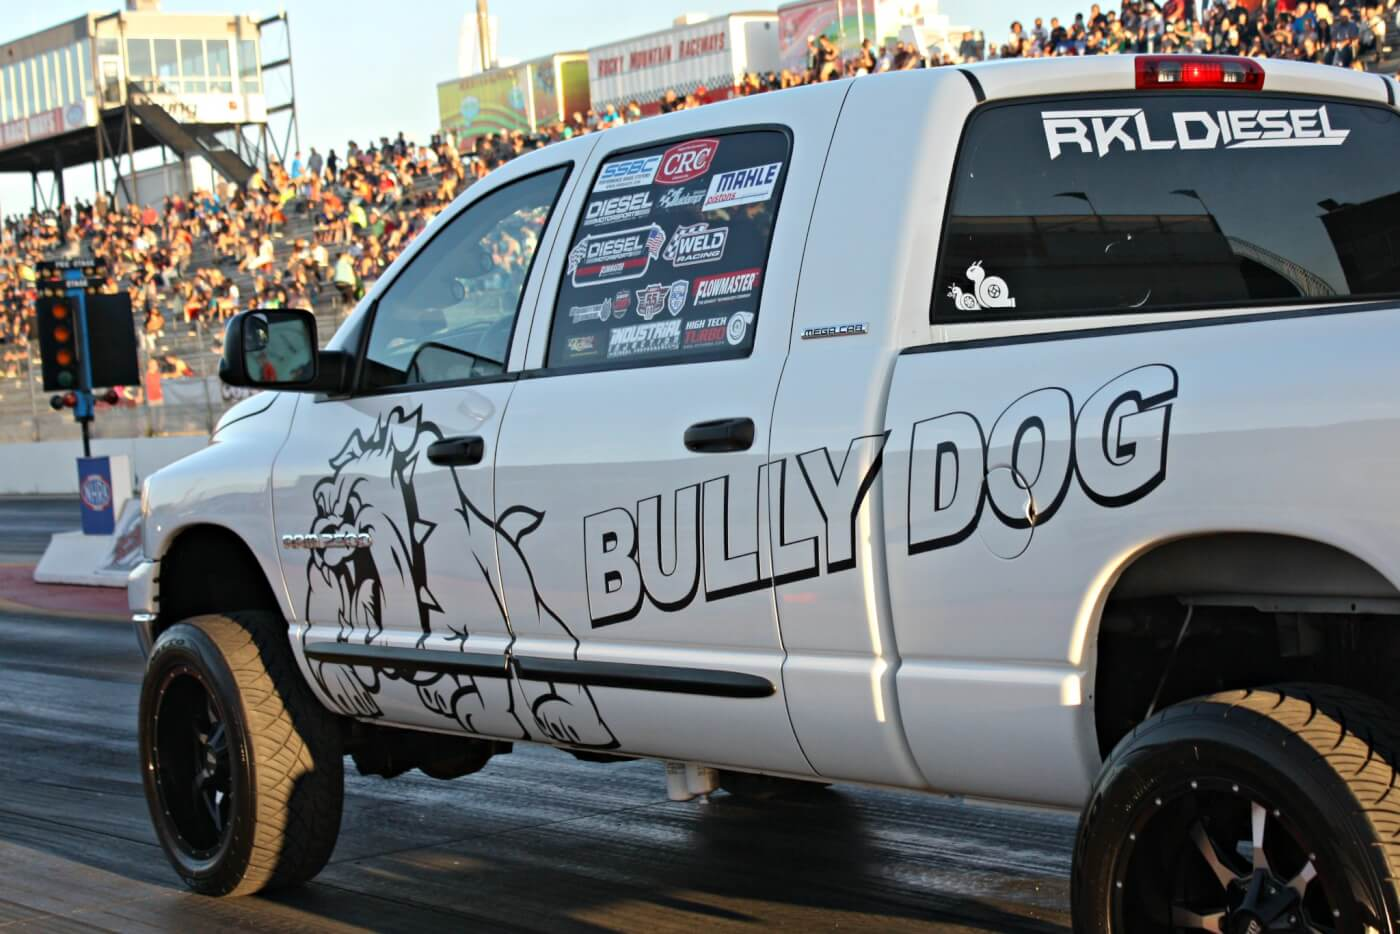 Lyle Richmond, an employee at nearby Bully Dog, had his 5.9L Cummins Mega Cab out racing and made it into the final round of Quick Diesel against Verlon Southwick, only to have a broken flexplate end the race sooner than he'd hoped.